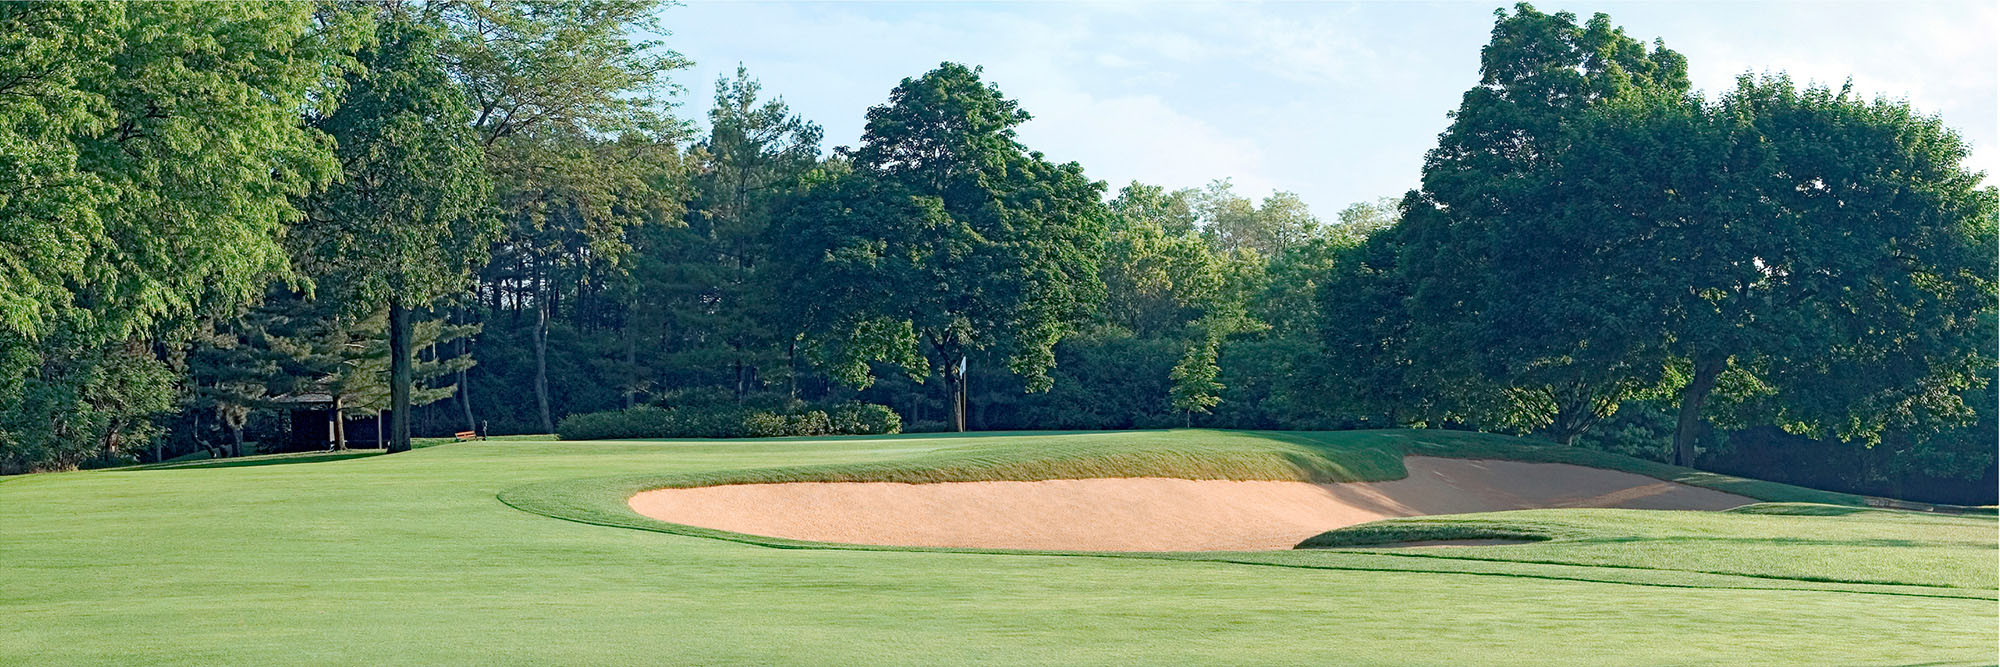 Golf Course Image - Knollwood No. 15